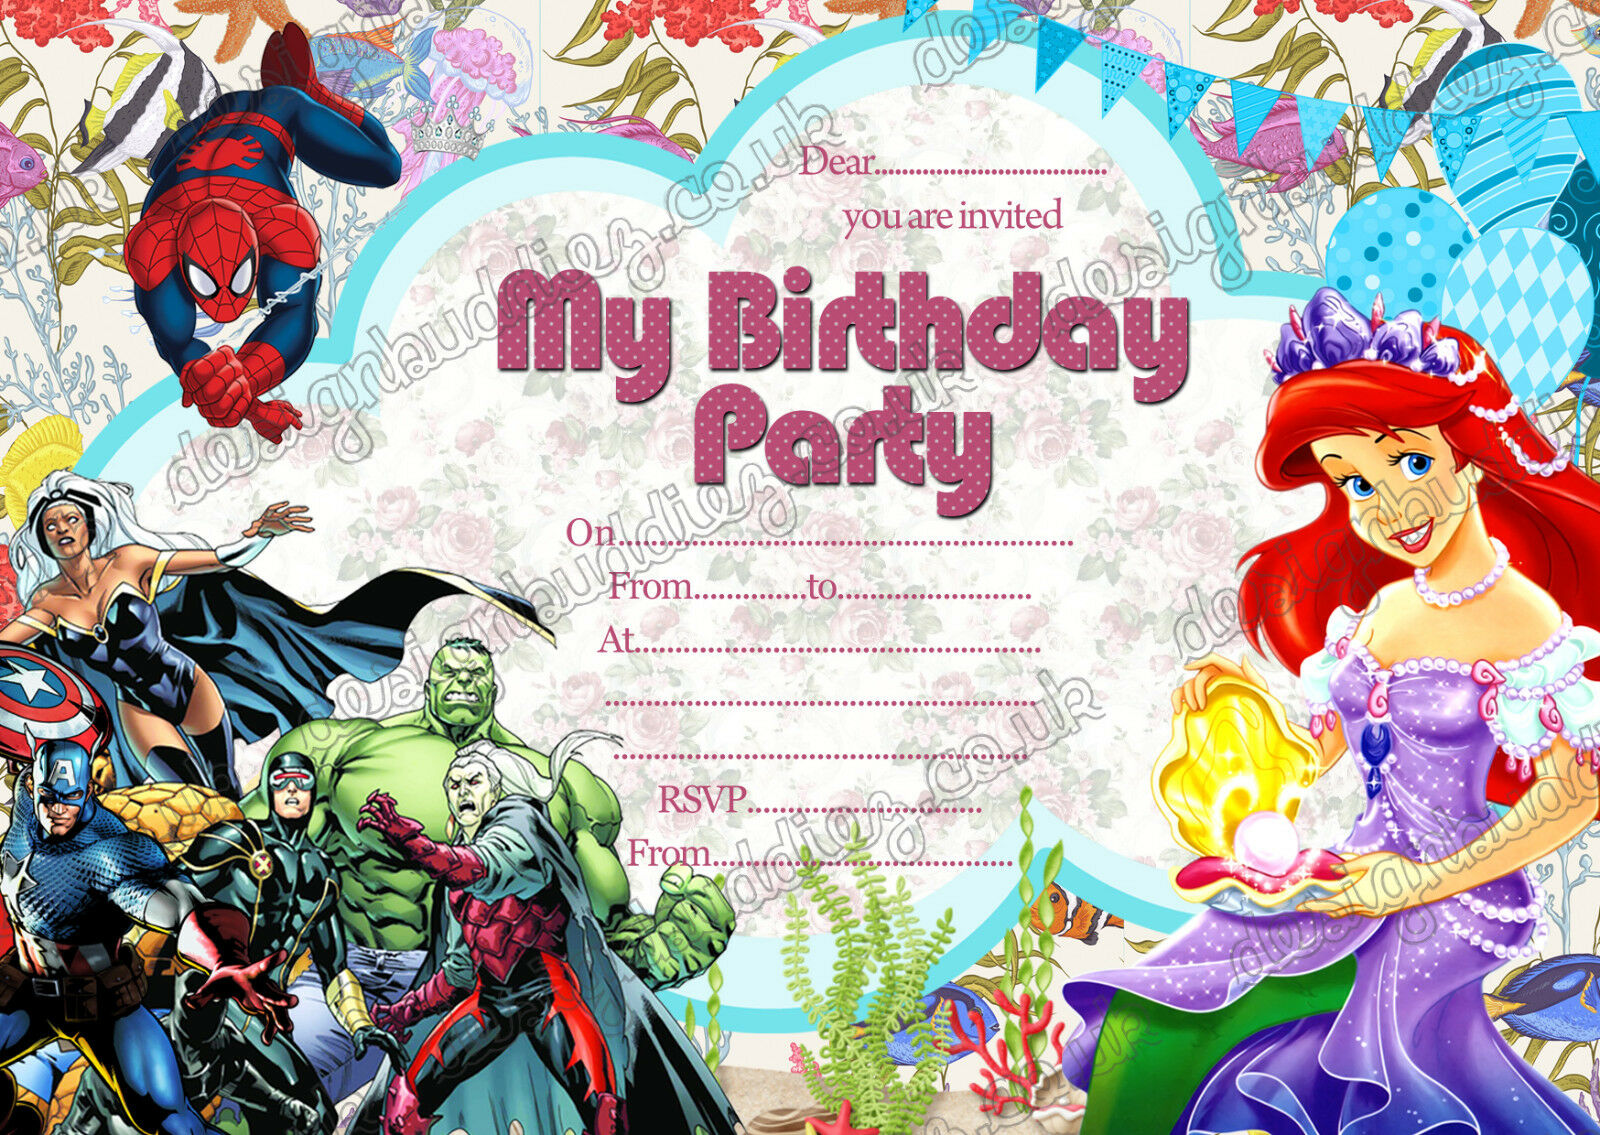 DISNEY PRINCESS ARIEL super hero birthday party invitations pack 8 ...